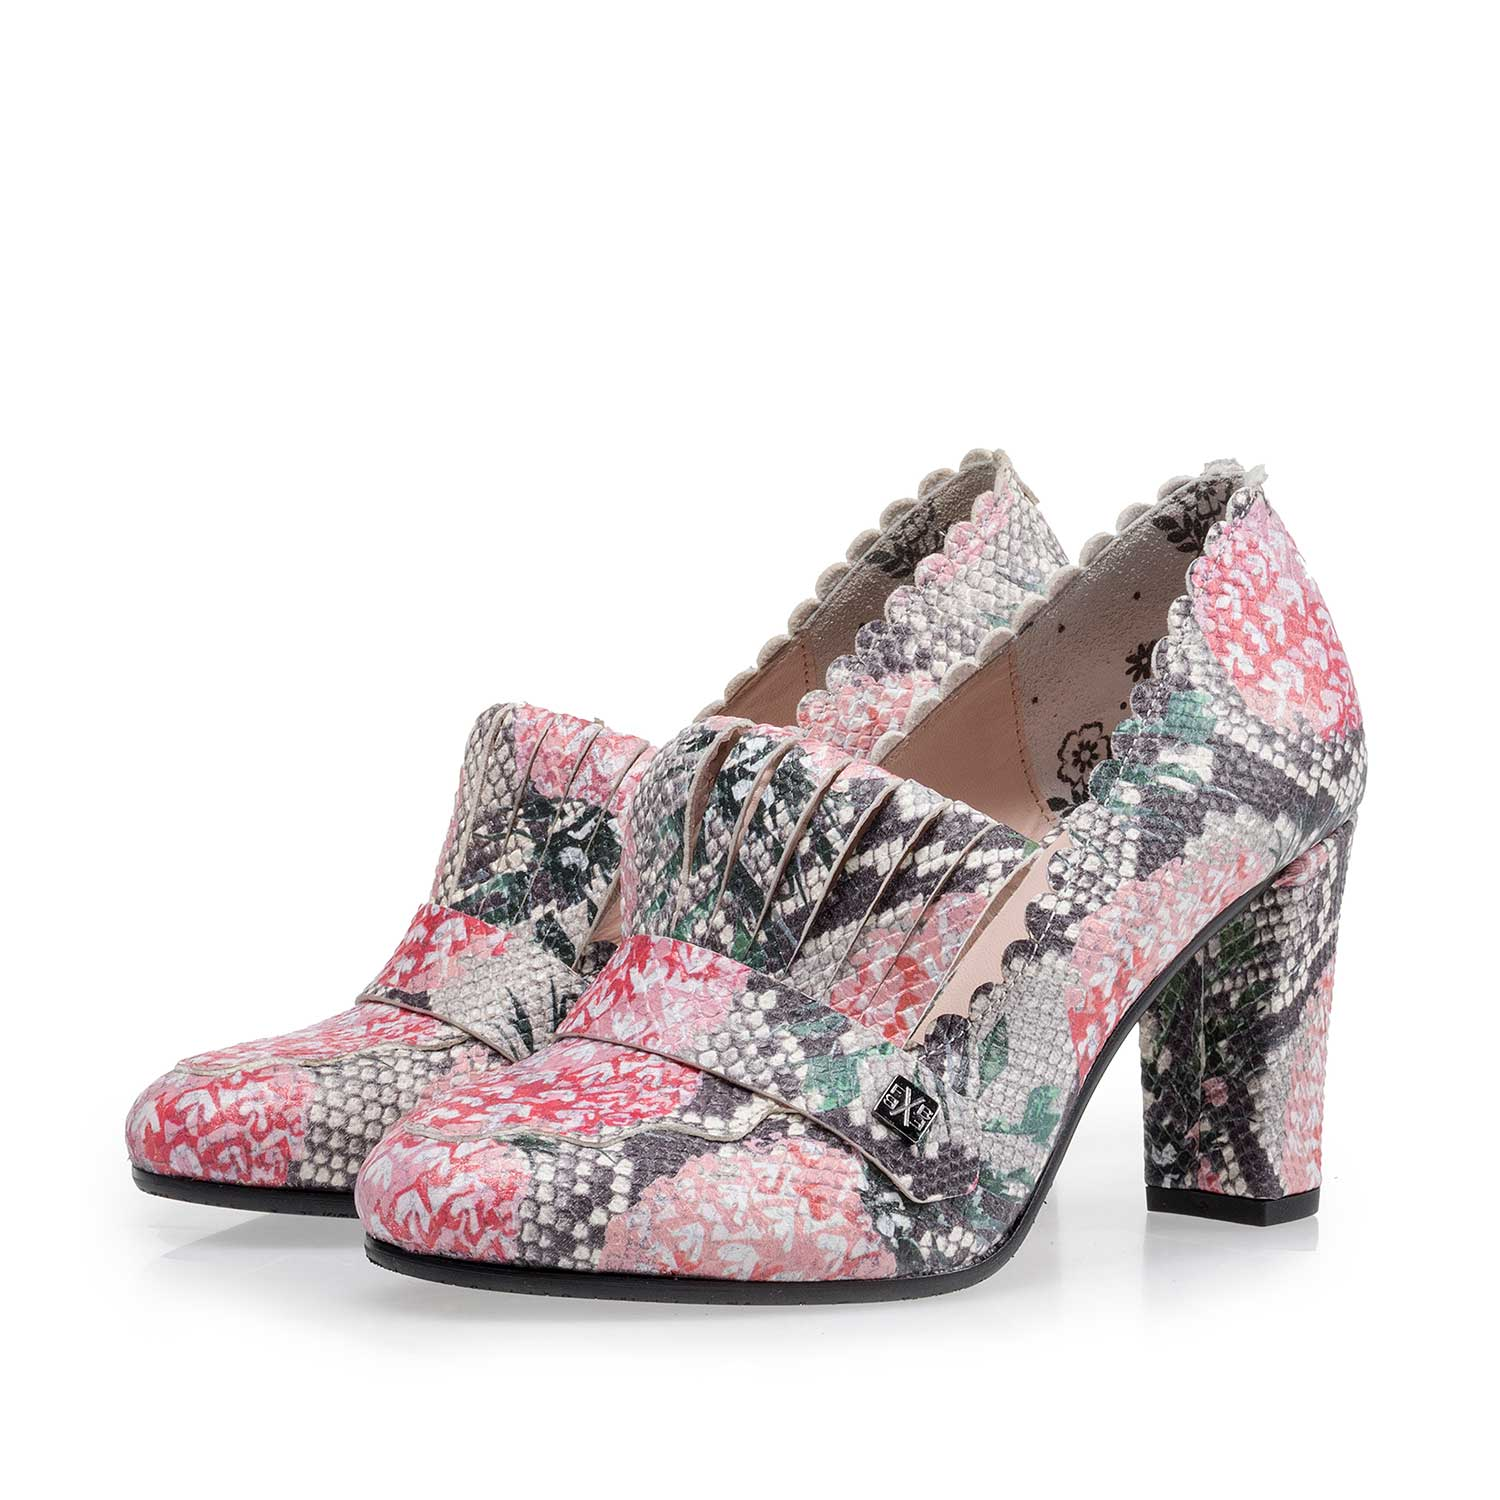 85190/05 - Multi-coloured leather pumps with all-over print